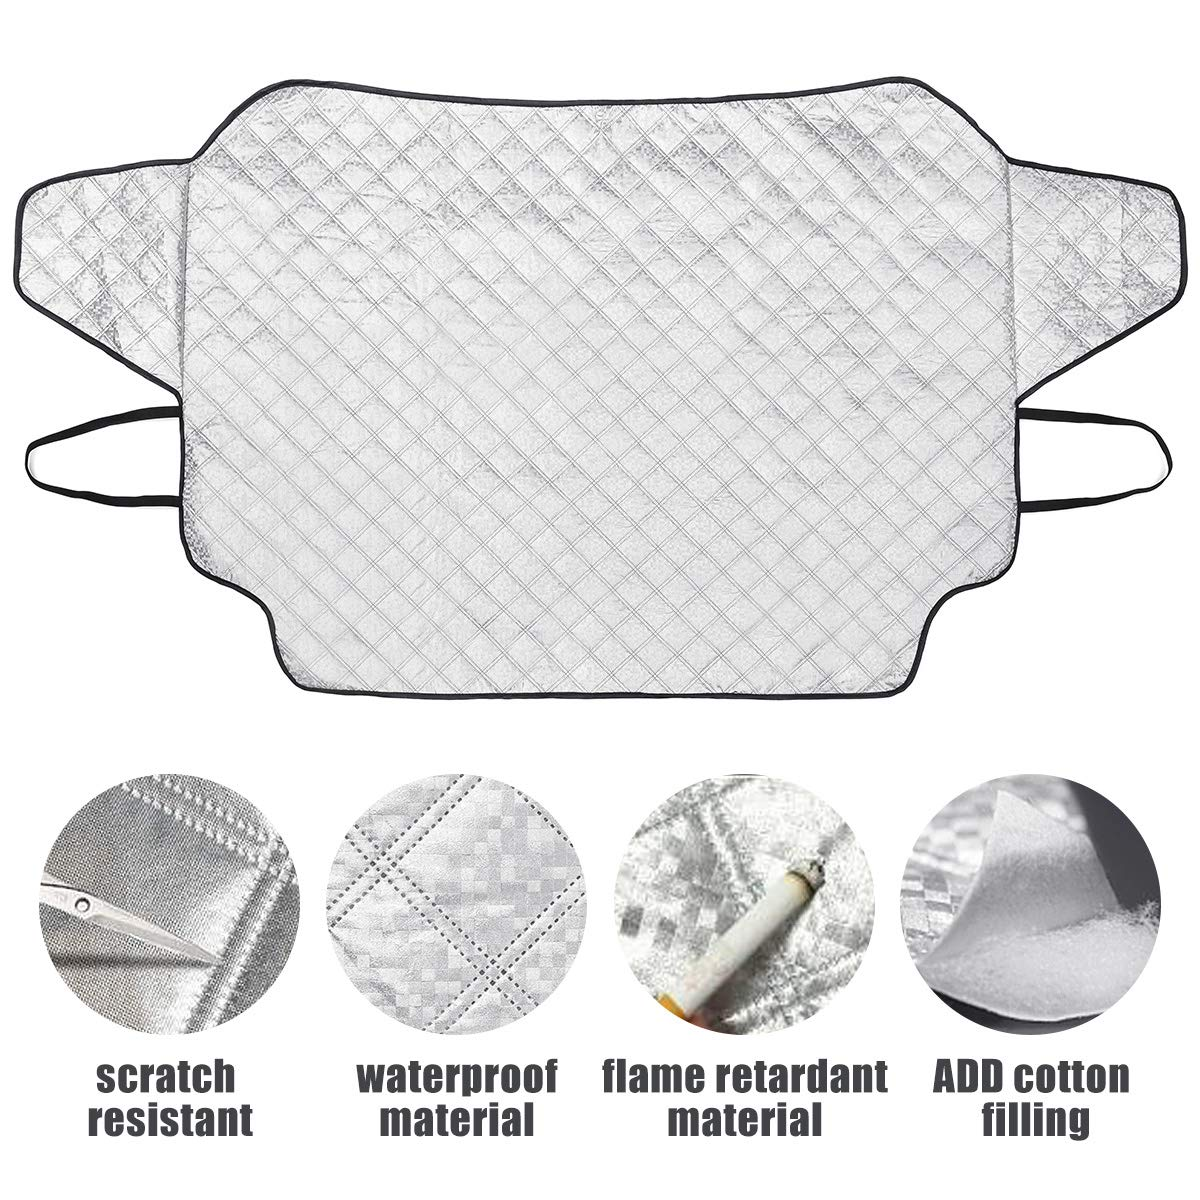 MATCC Car Windshield Cover Sun Shade Summer Sun Protector Magnetic Waterproof Ice Removal Winter Windshield Cover Sun Shade Lengthened Side Panels Snow Protection Cover Fits All Season Most Cars